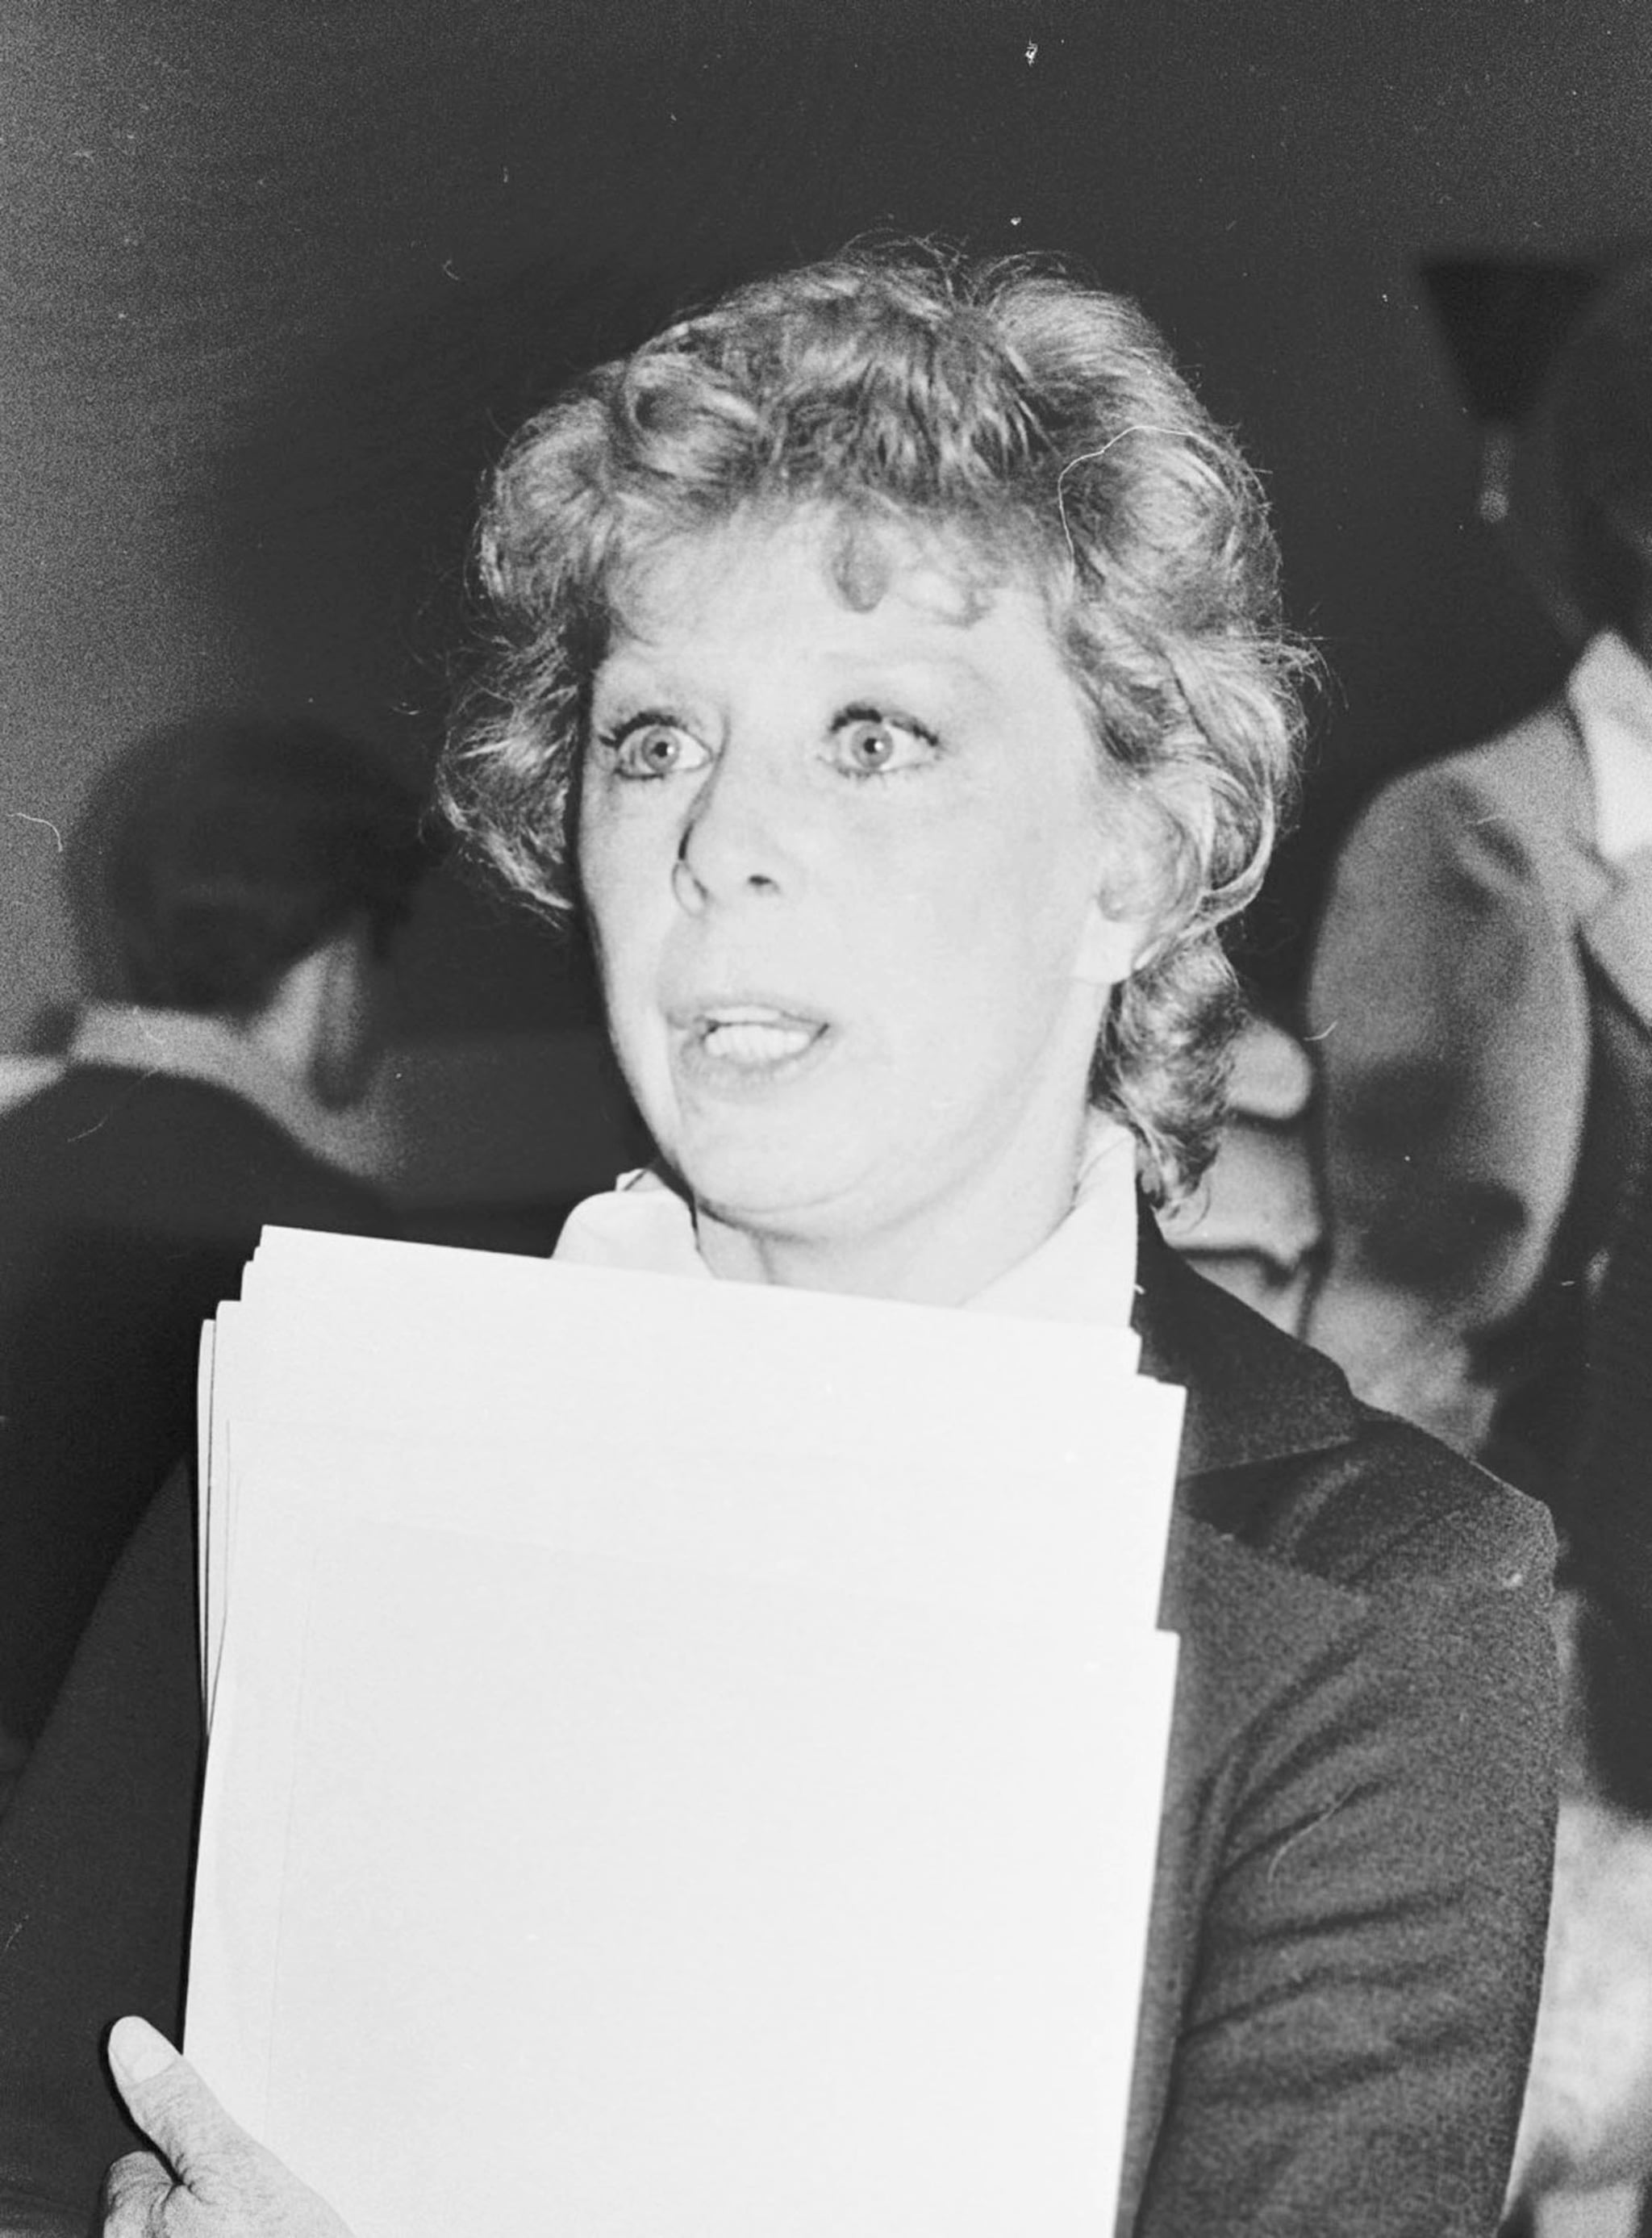 Gwen Verdon during Lincoln Center Celebrity Auction - November 20, 1975 in New York City, New York, United States. (Photo by Bobby Bank/WireImage)